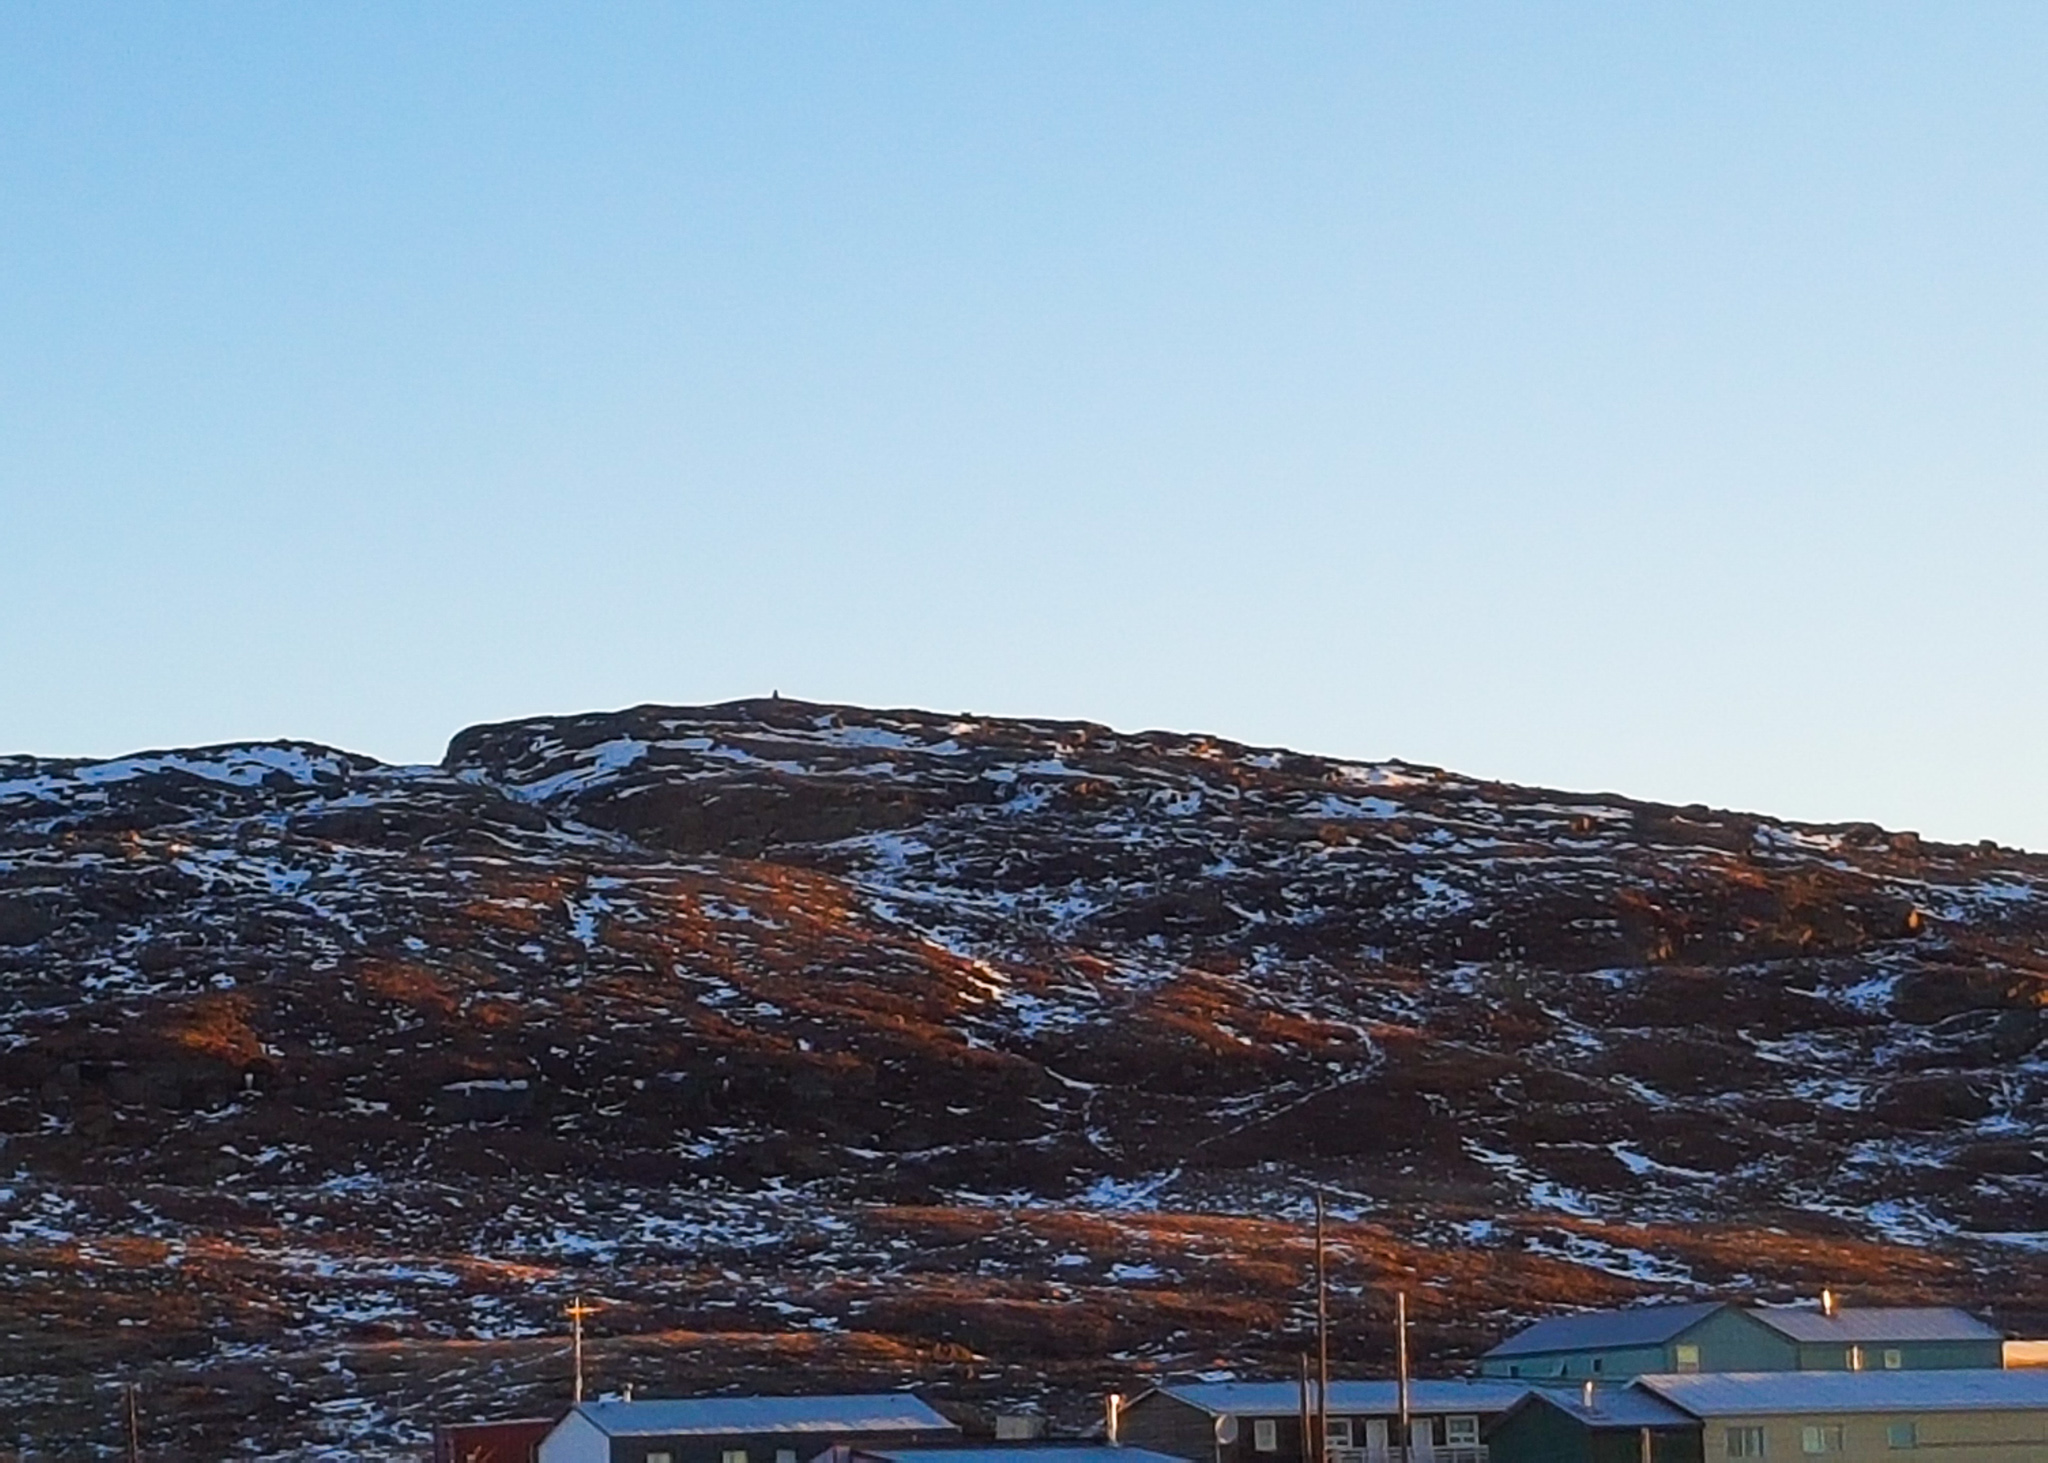 partially snowy hill